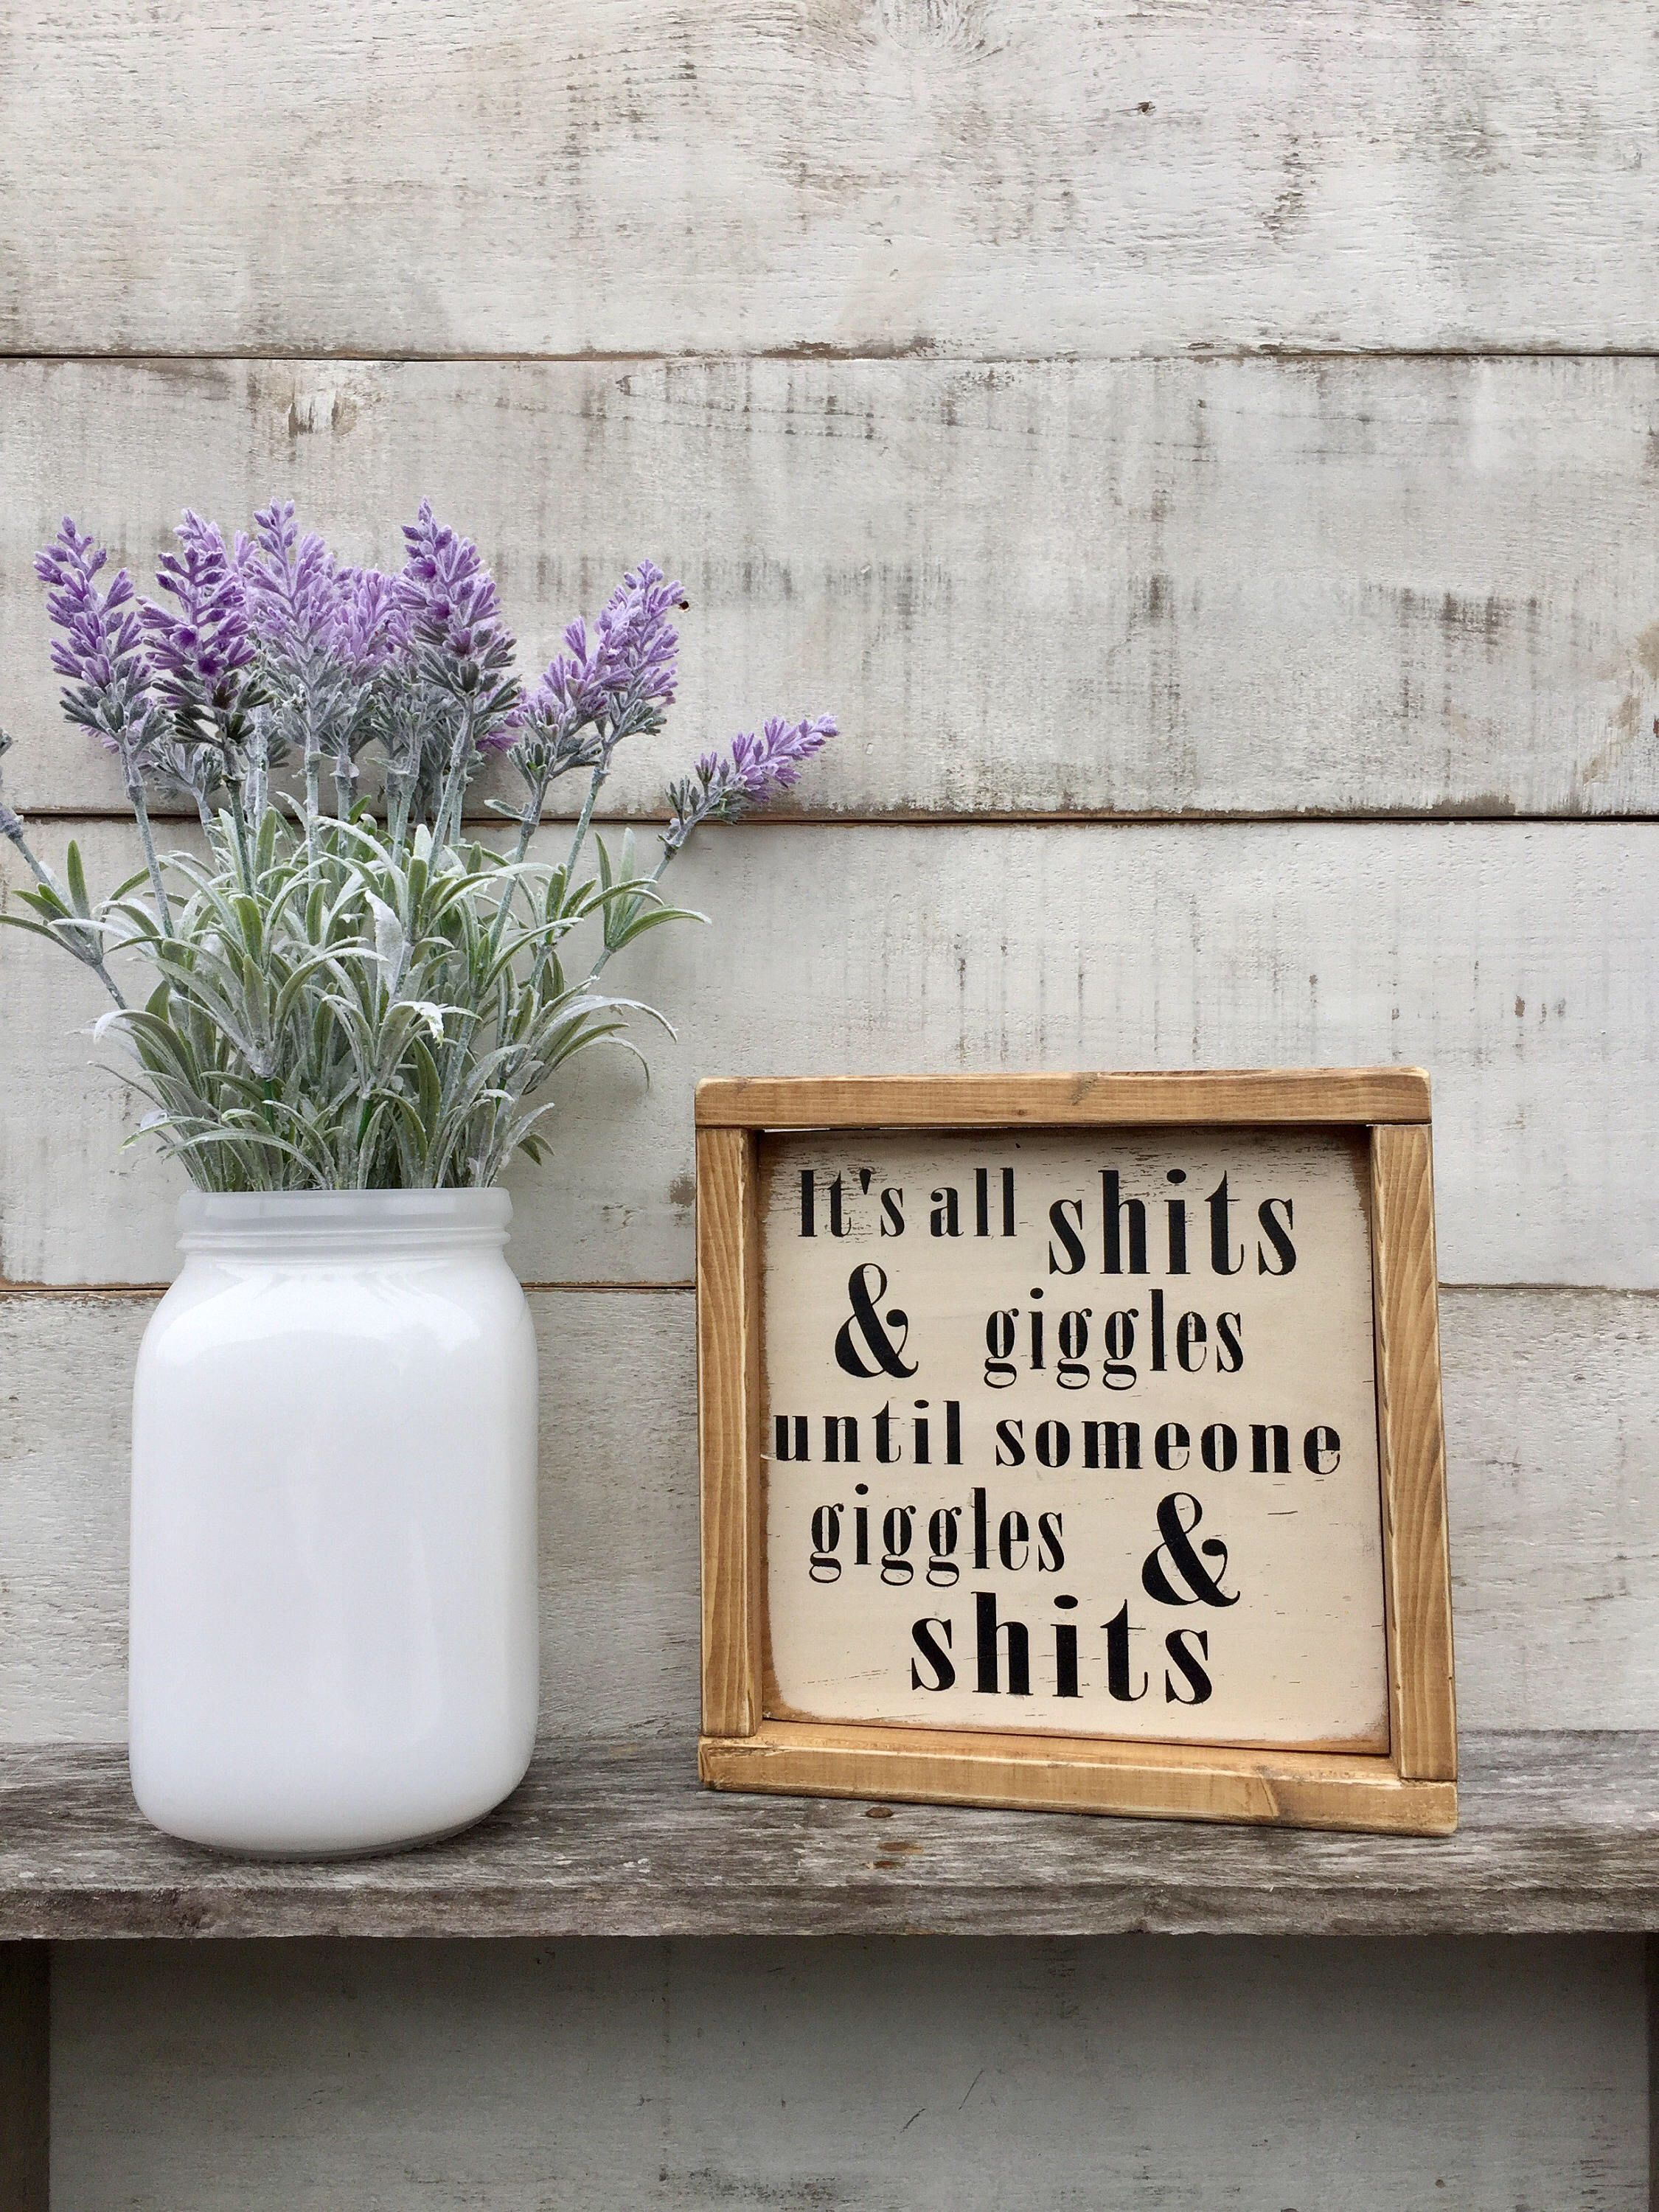 Bathroom Decor Signs Bathroom Sign Wood Sign Bathroom Decor Humor Funny Rustic